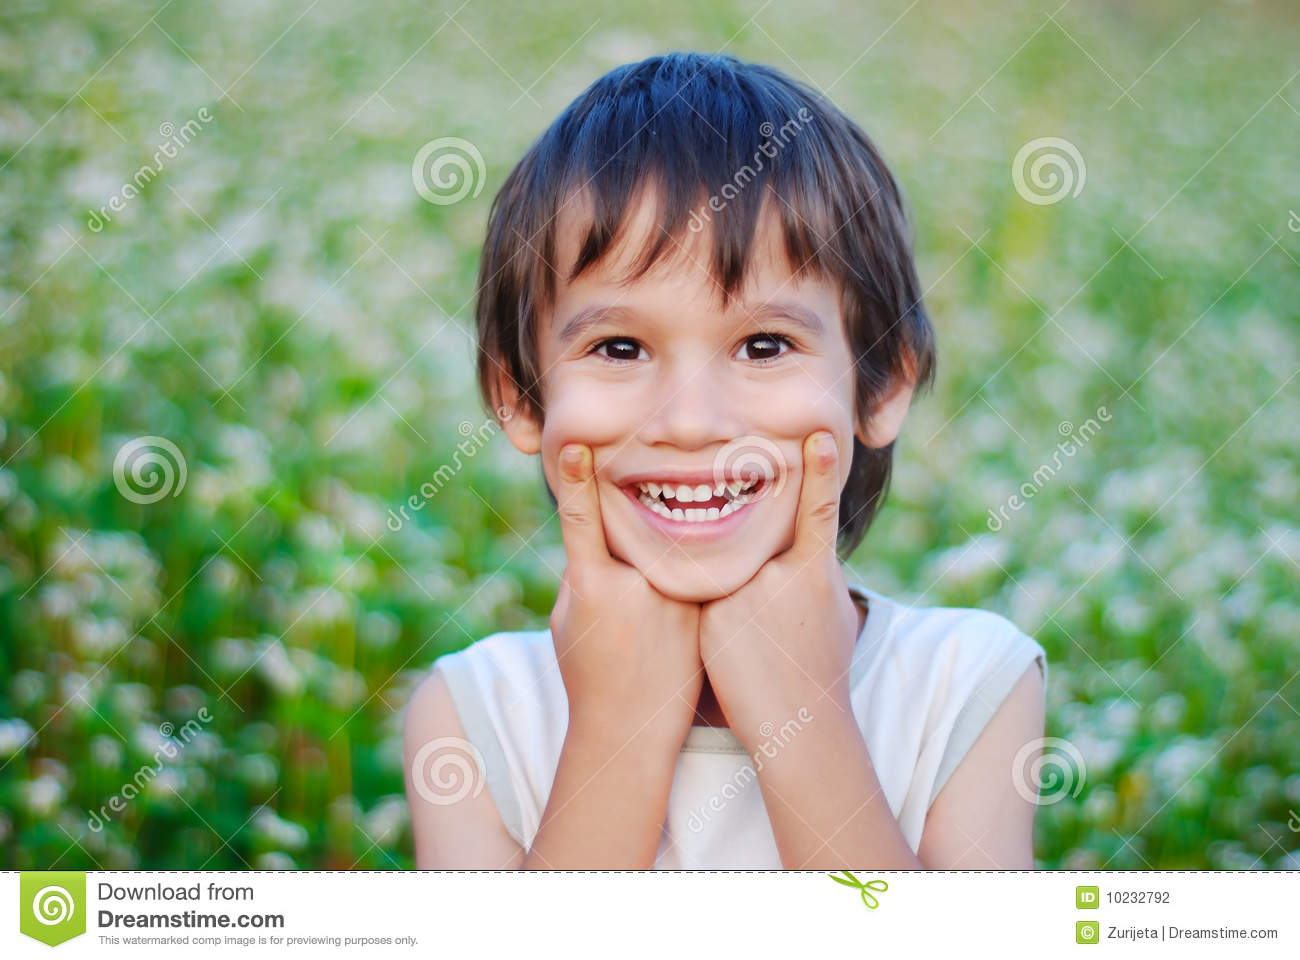 cute kid with smile grimace stock photo - image of body, male: 10232792